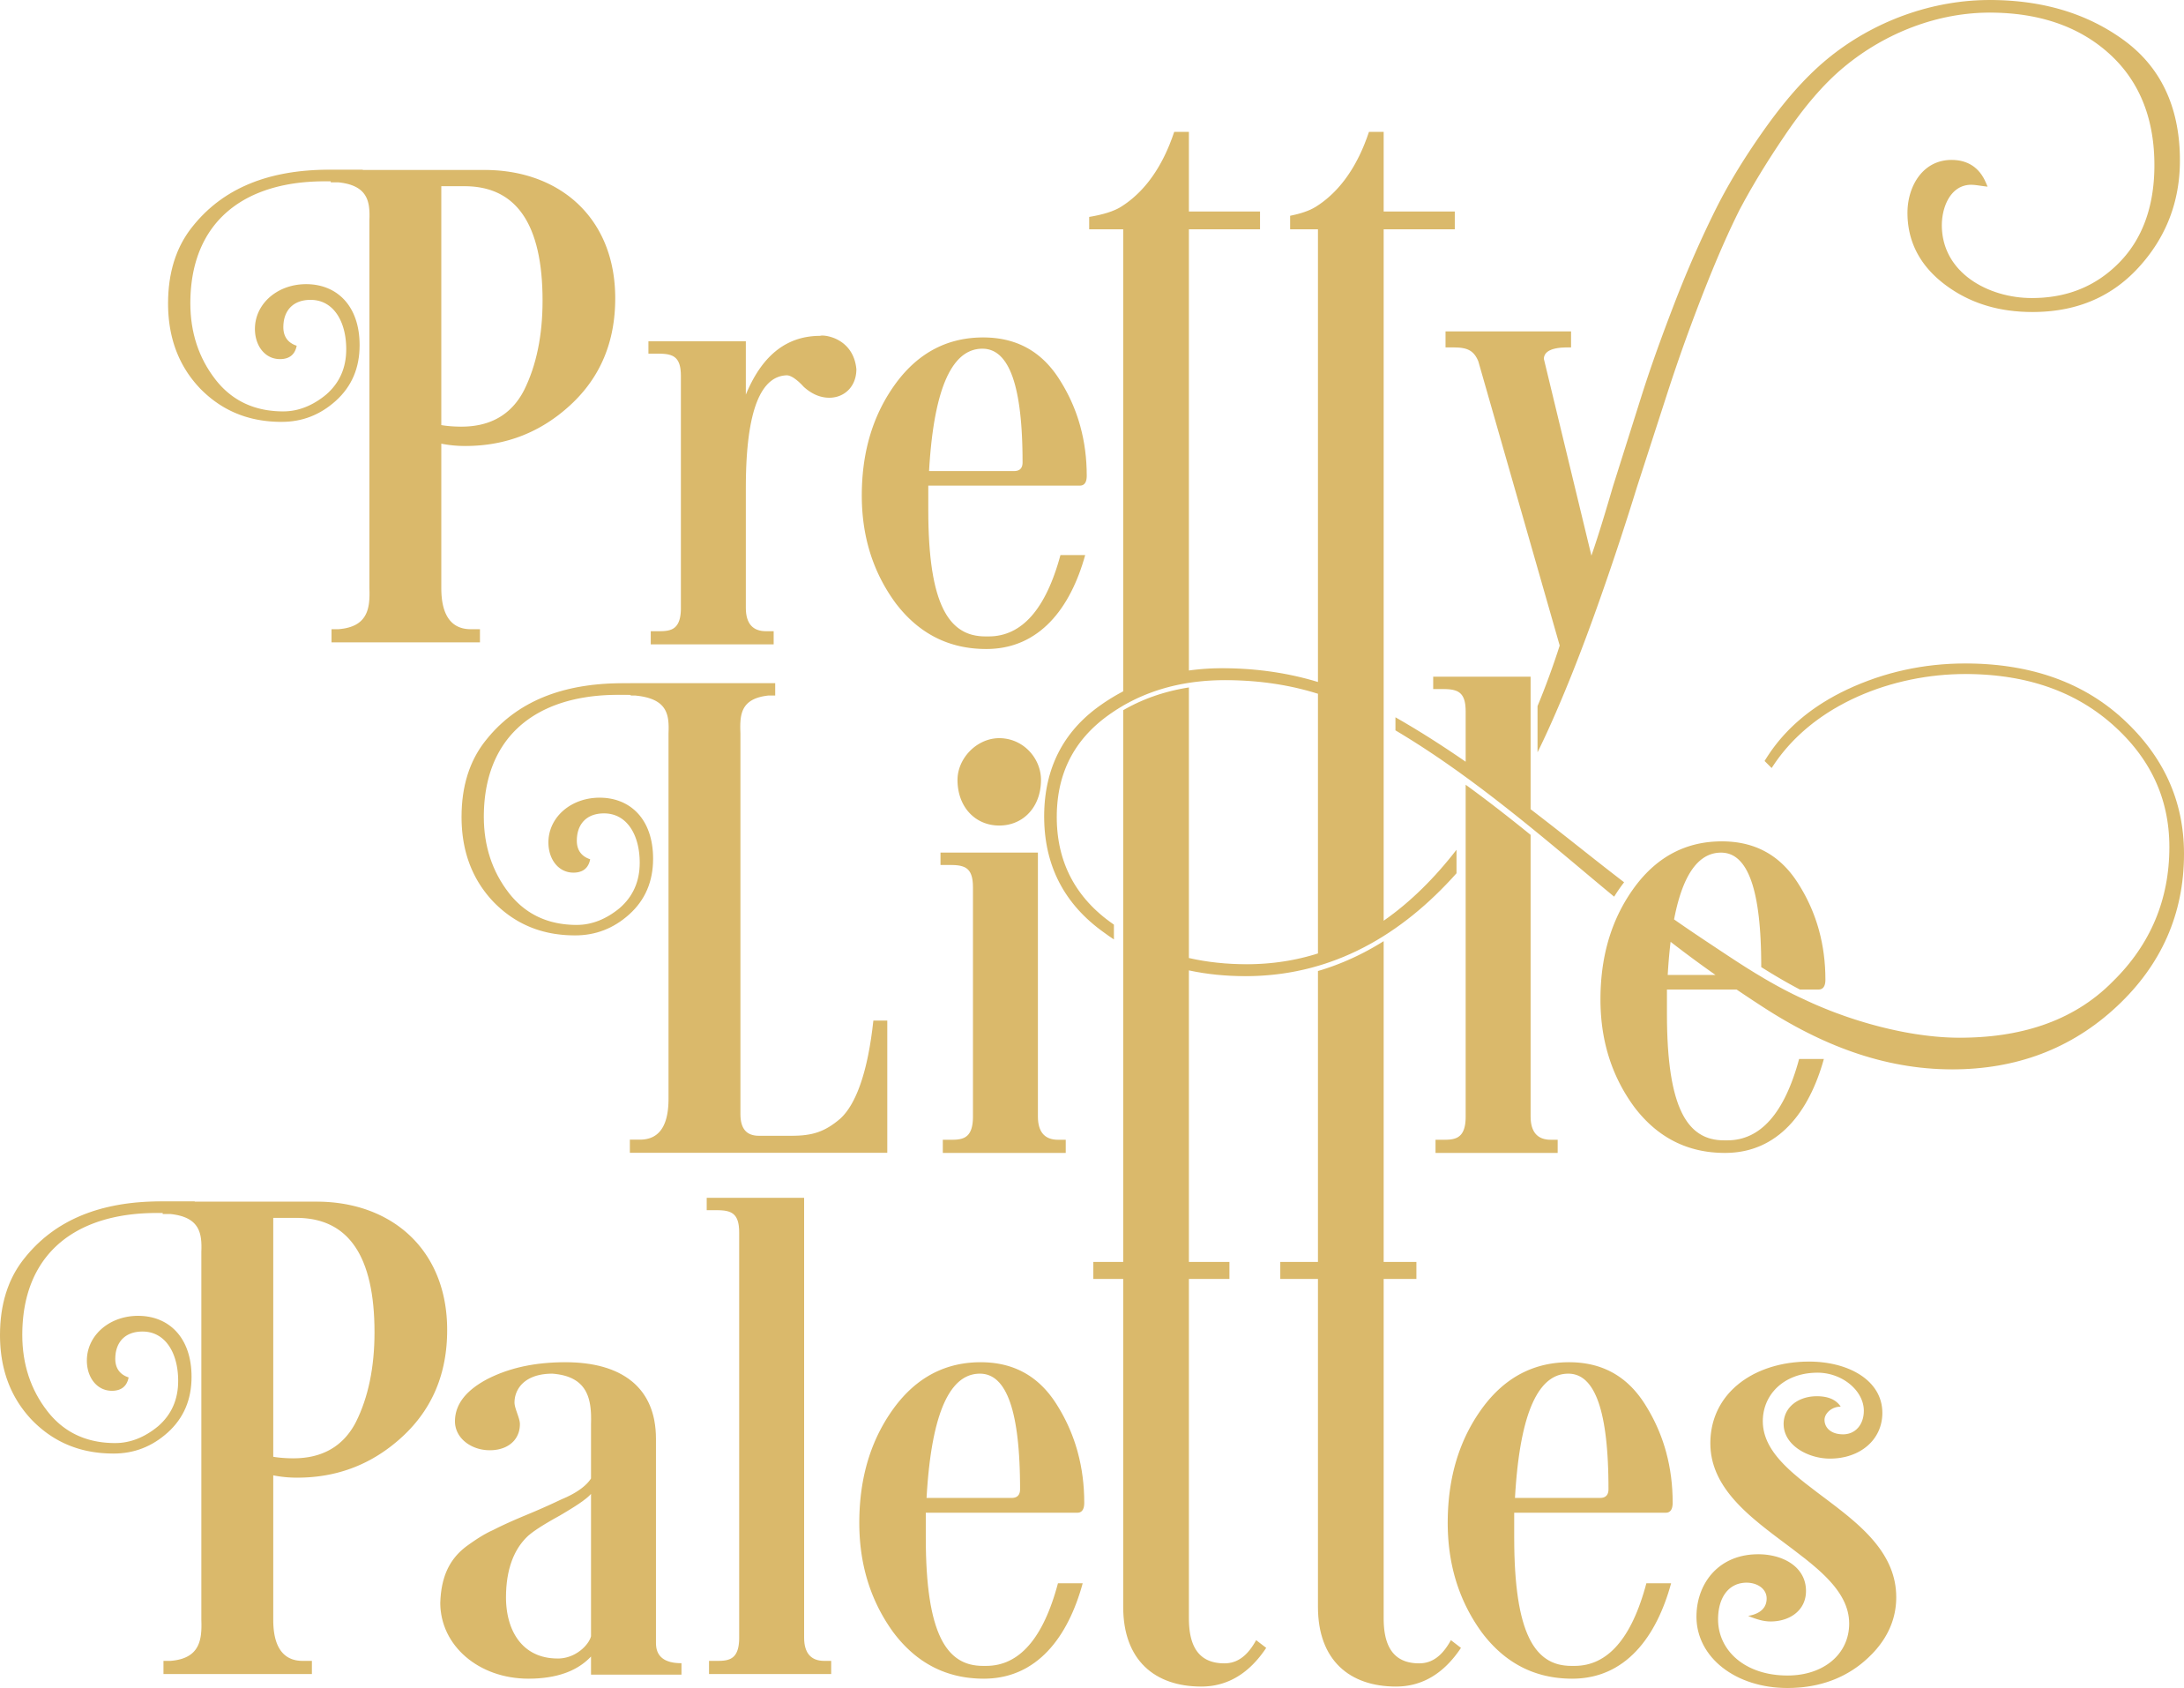 Pretty Little Palettes